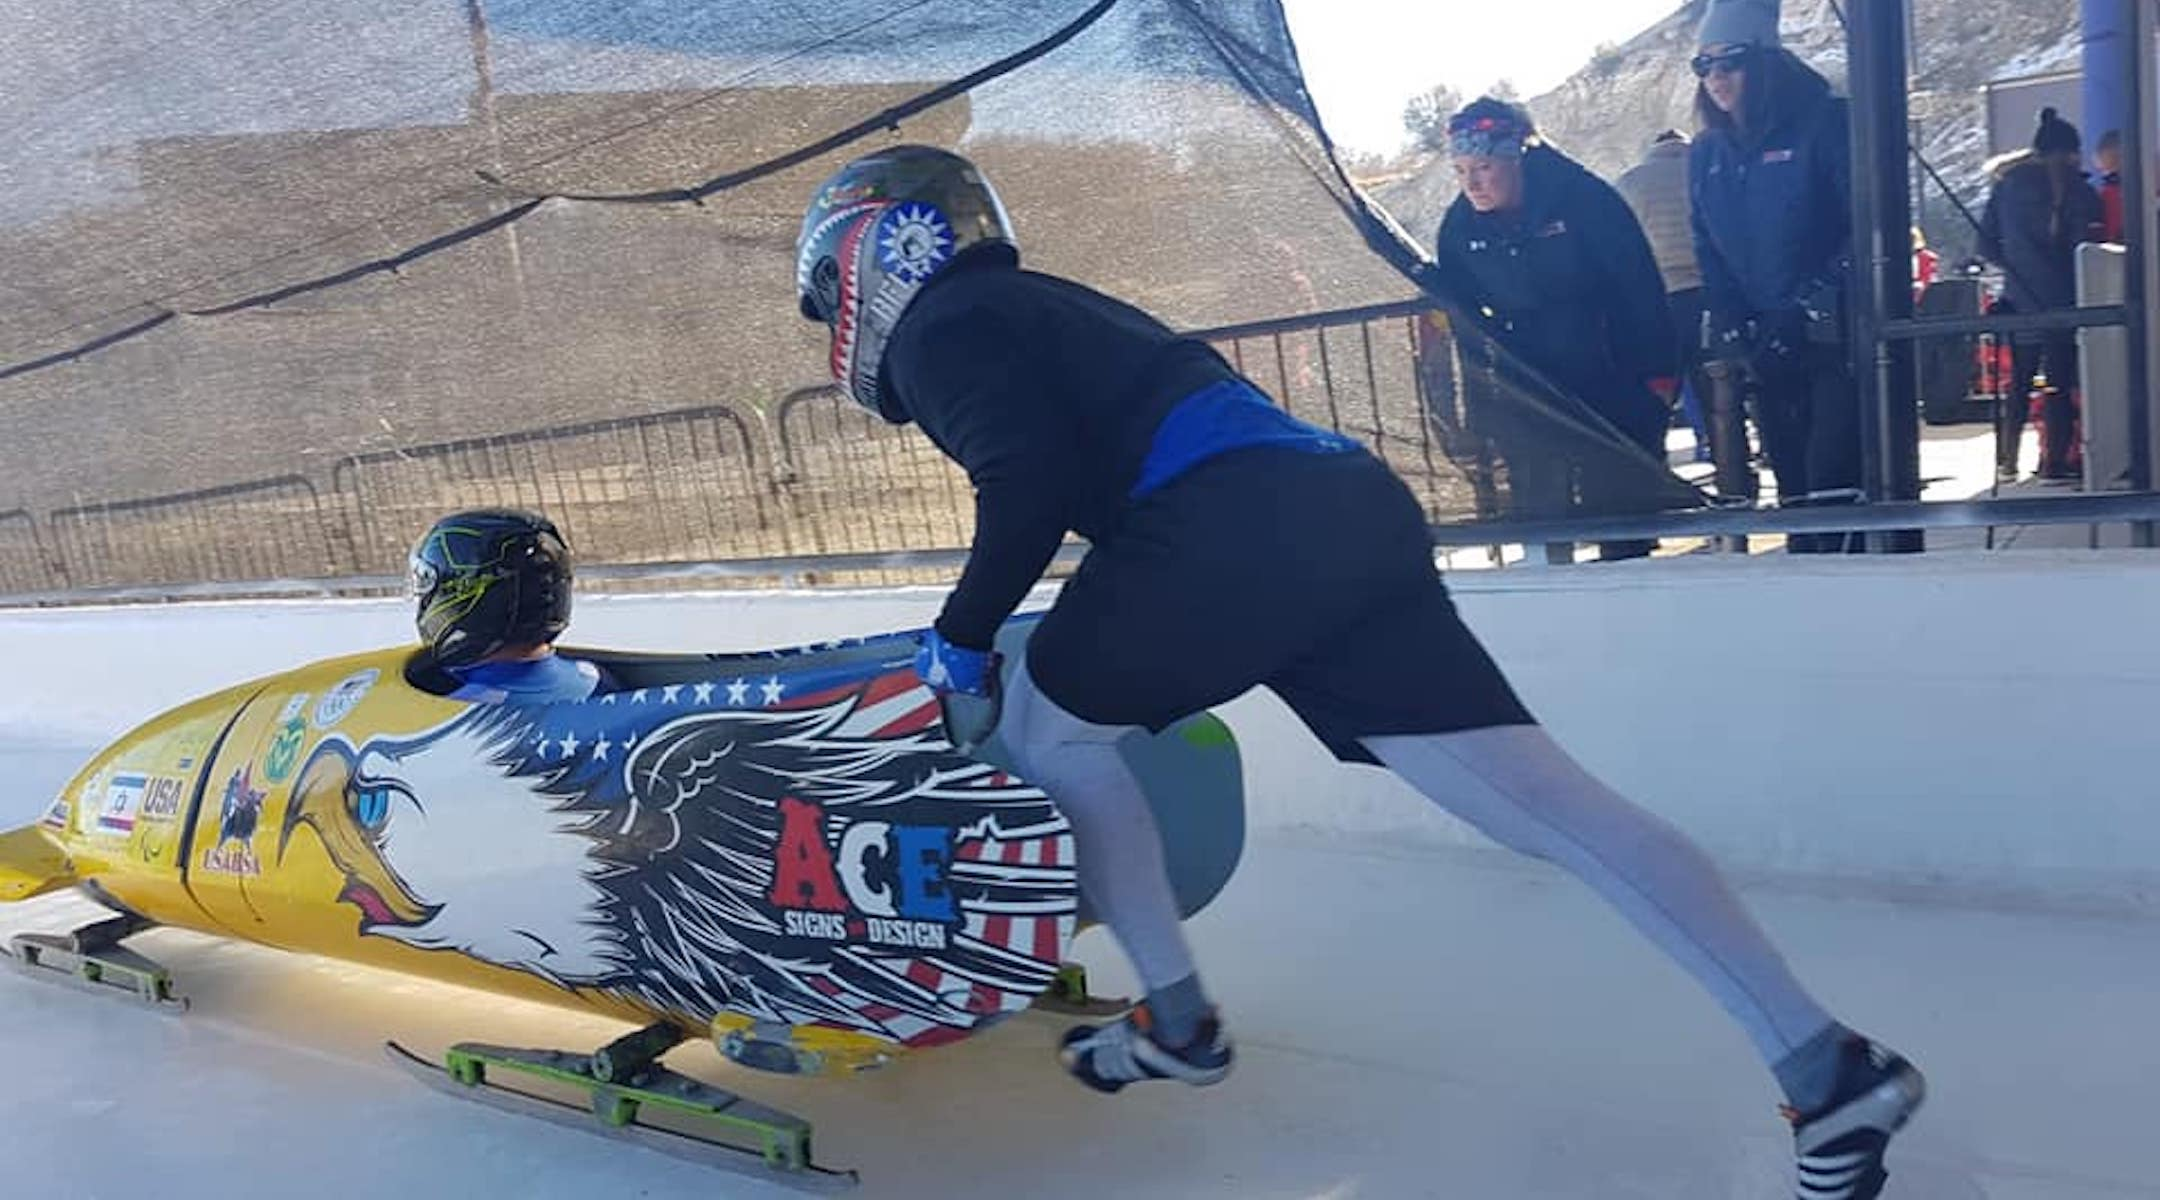 Israel Has A Bobsled Team And It Wants To Compete In The